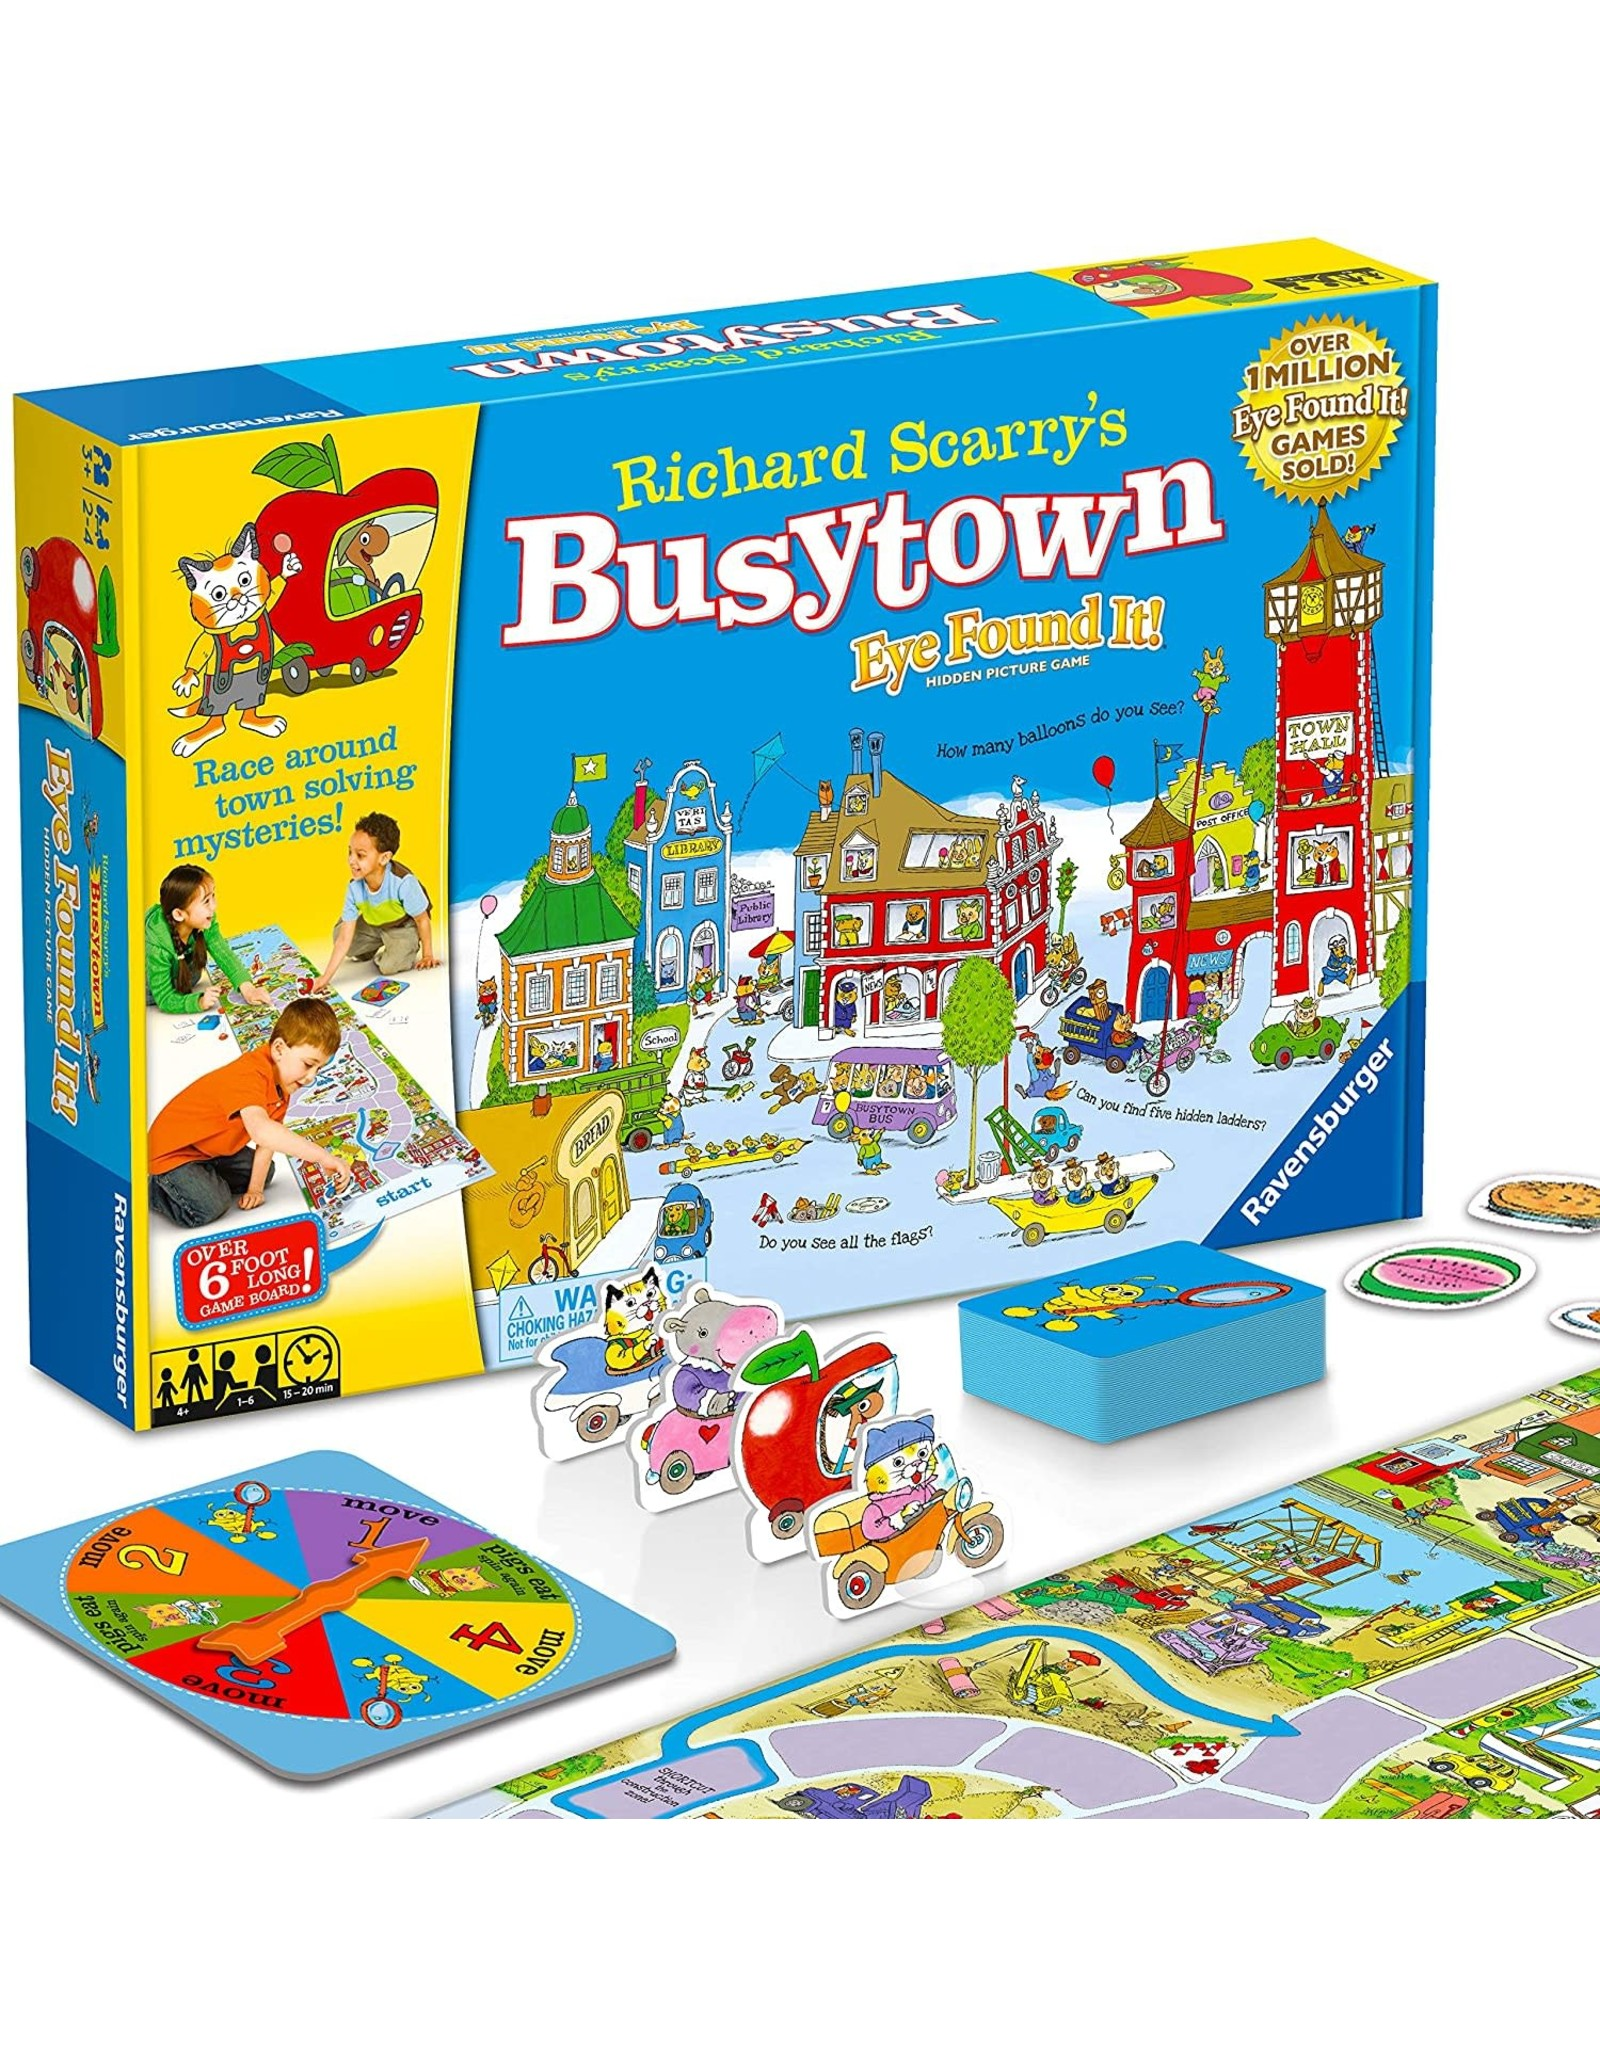 Ravensburger Richard Scarry's Busytown: Eye Found It